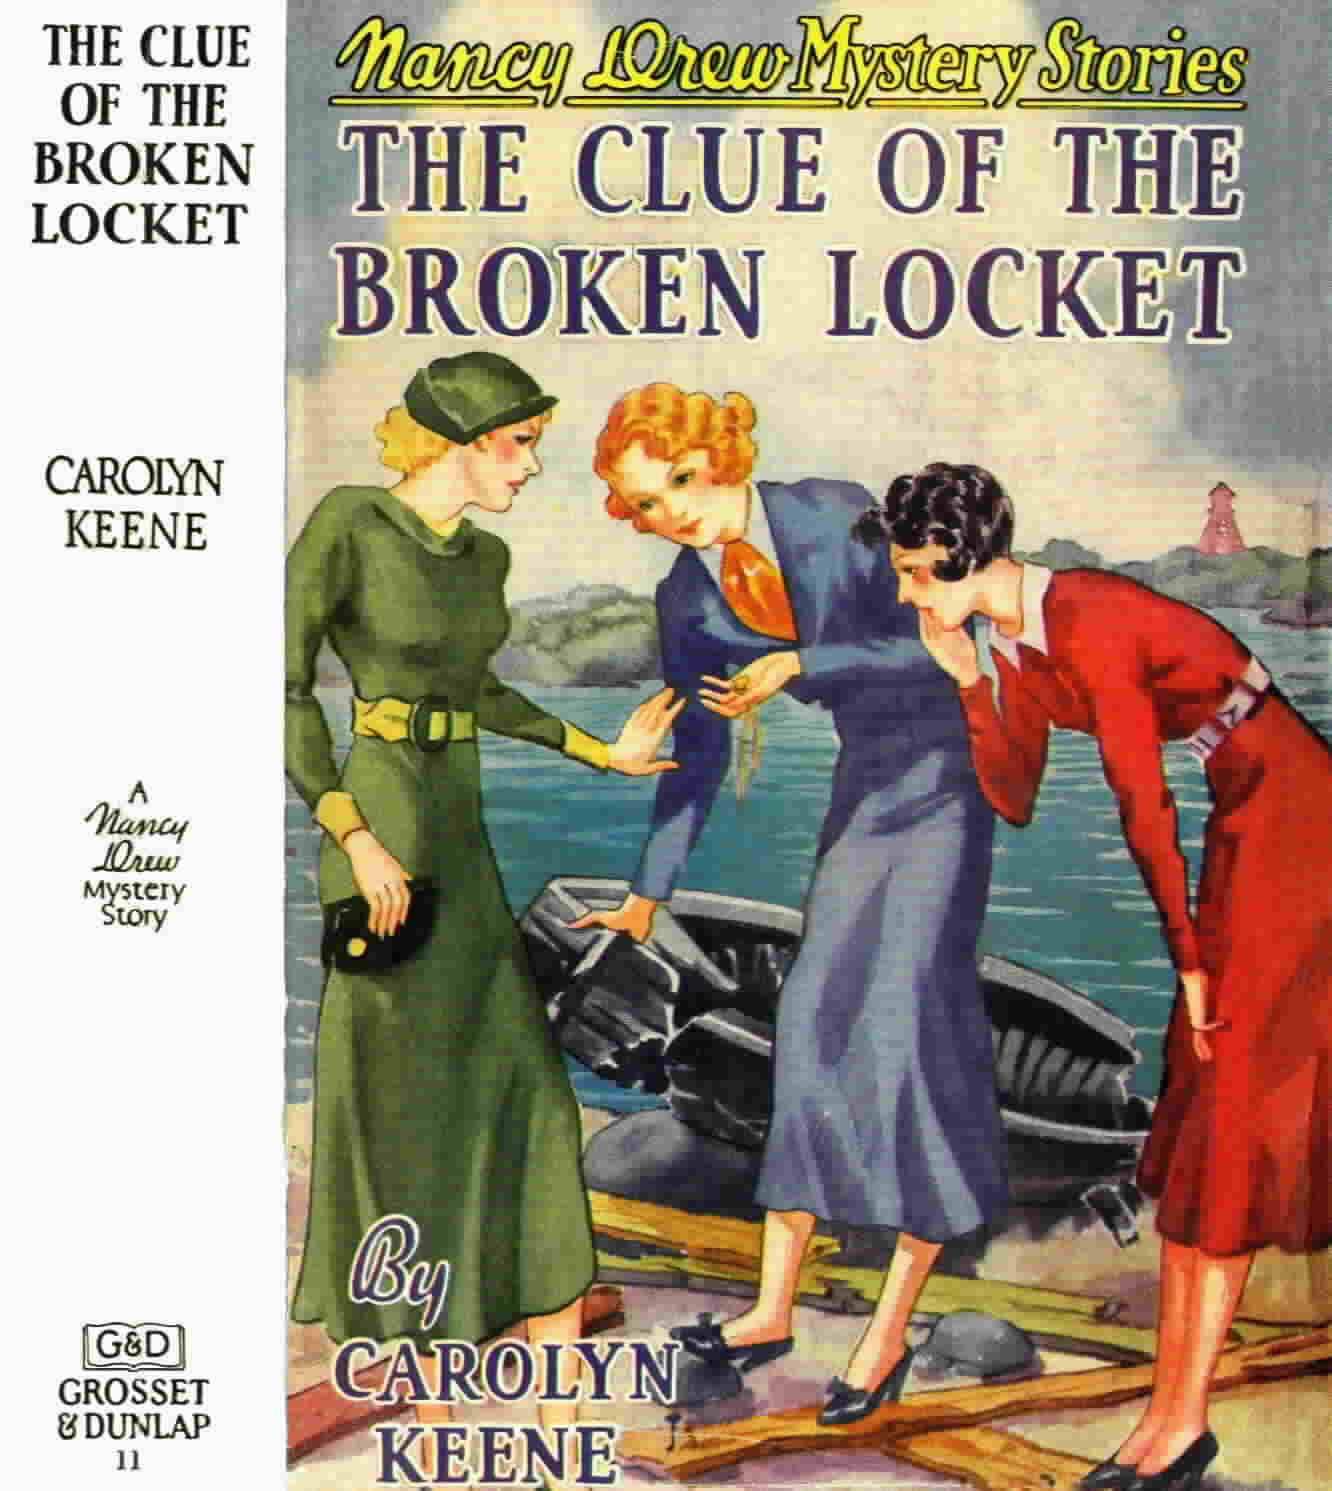 The Clue of the Broken Locket